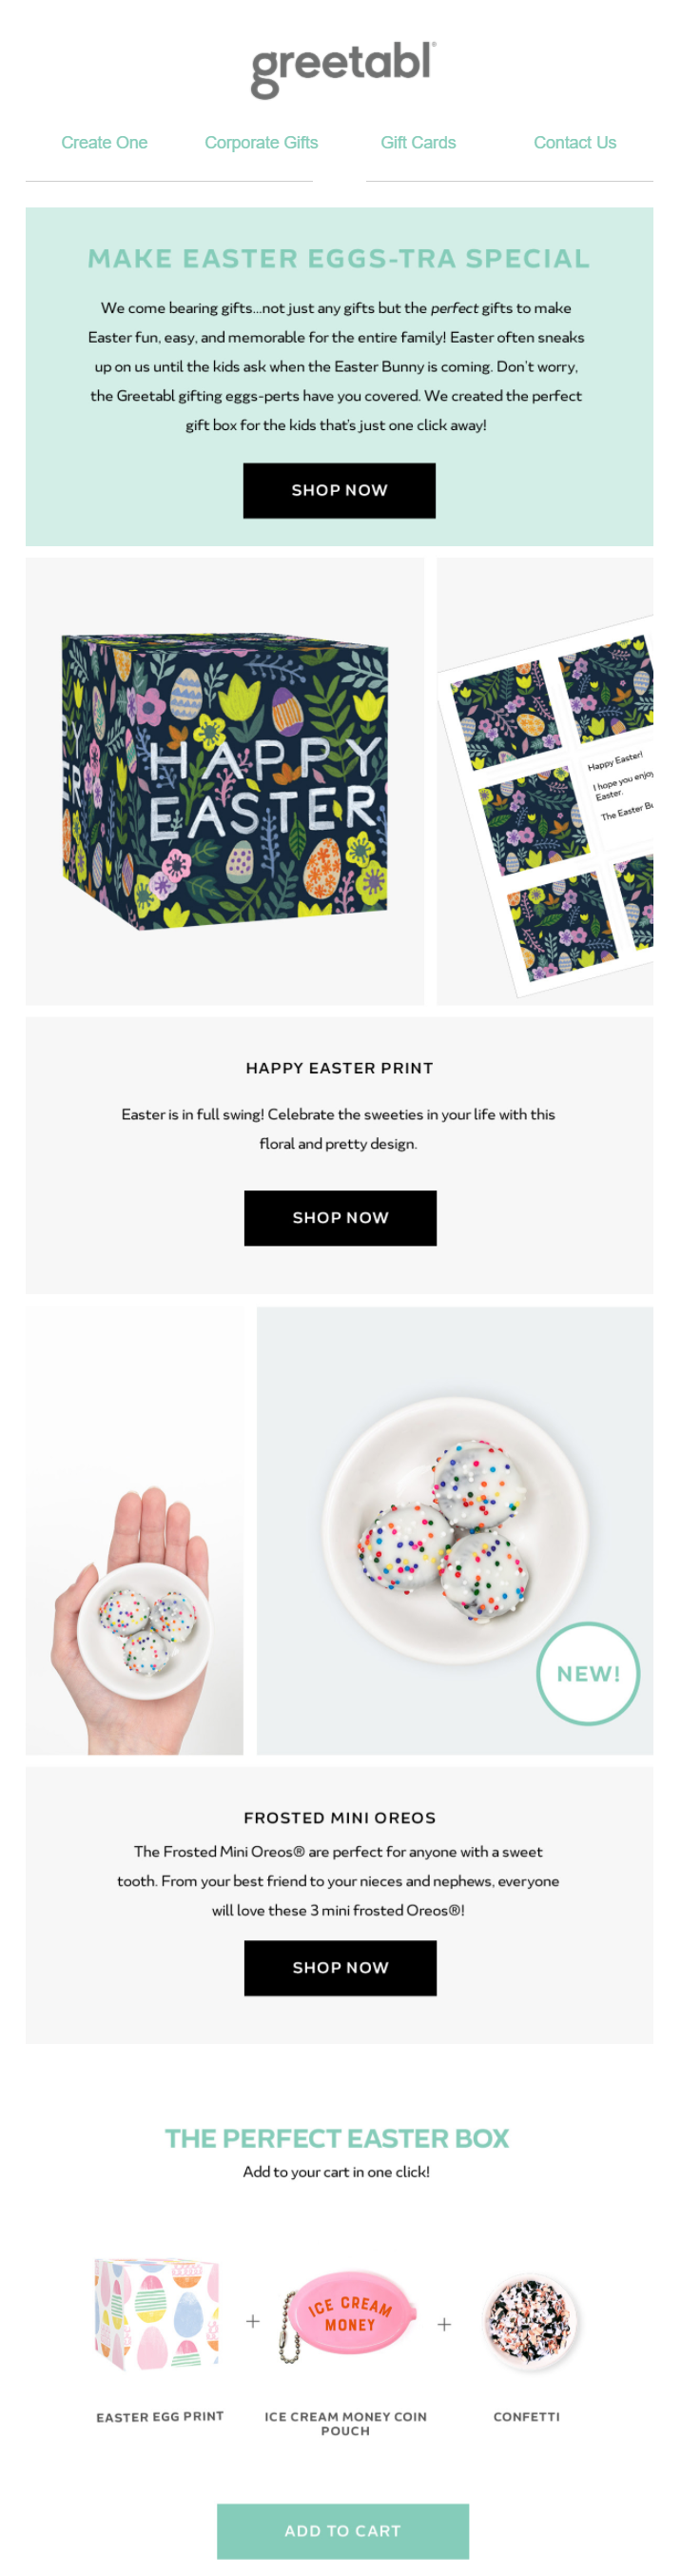 Easter email campaign by Greetabl